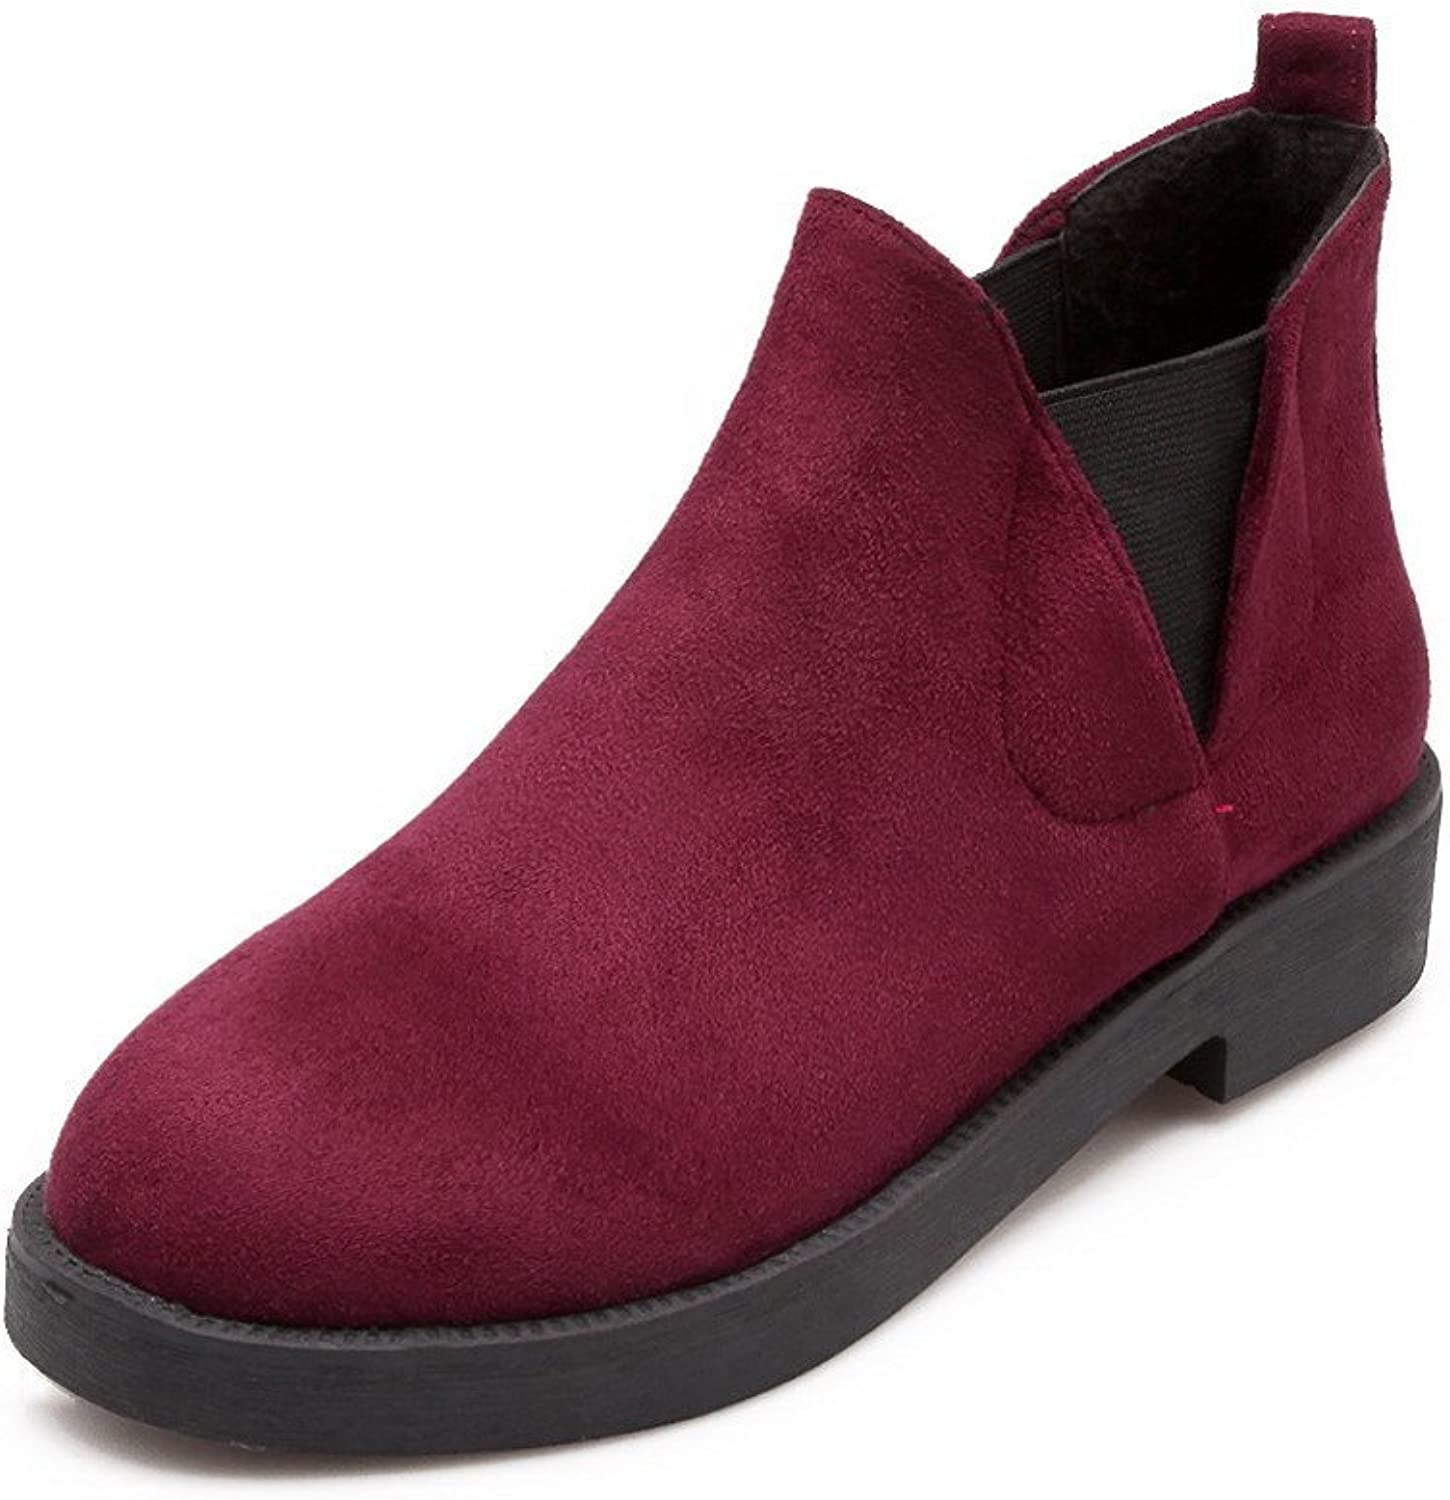 WeenFashion Women's Pull-on Round Closed Toe Low Heels Imitated Suede Low-top Boots